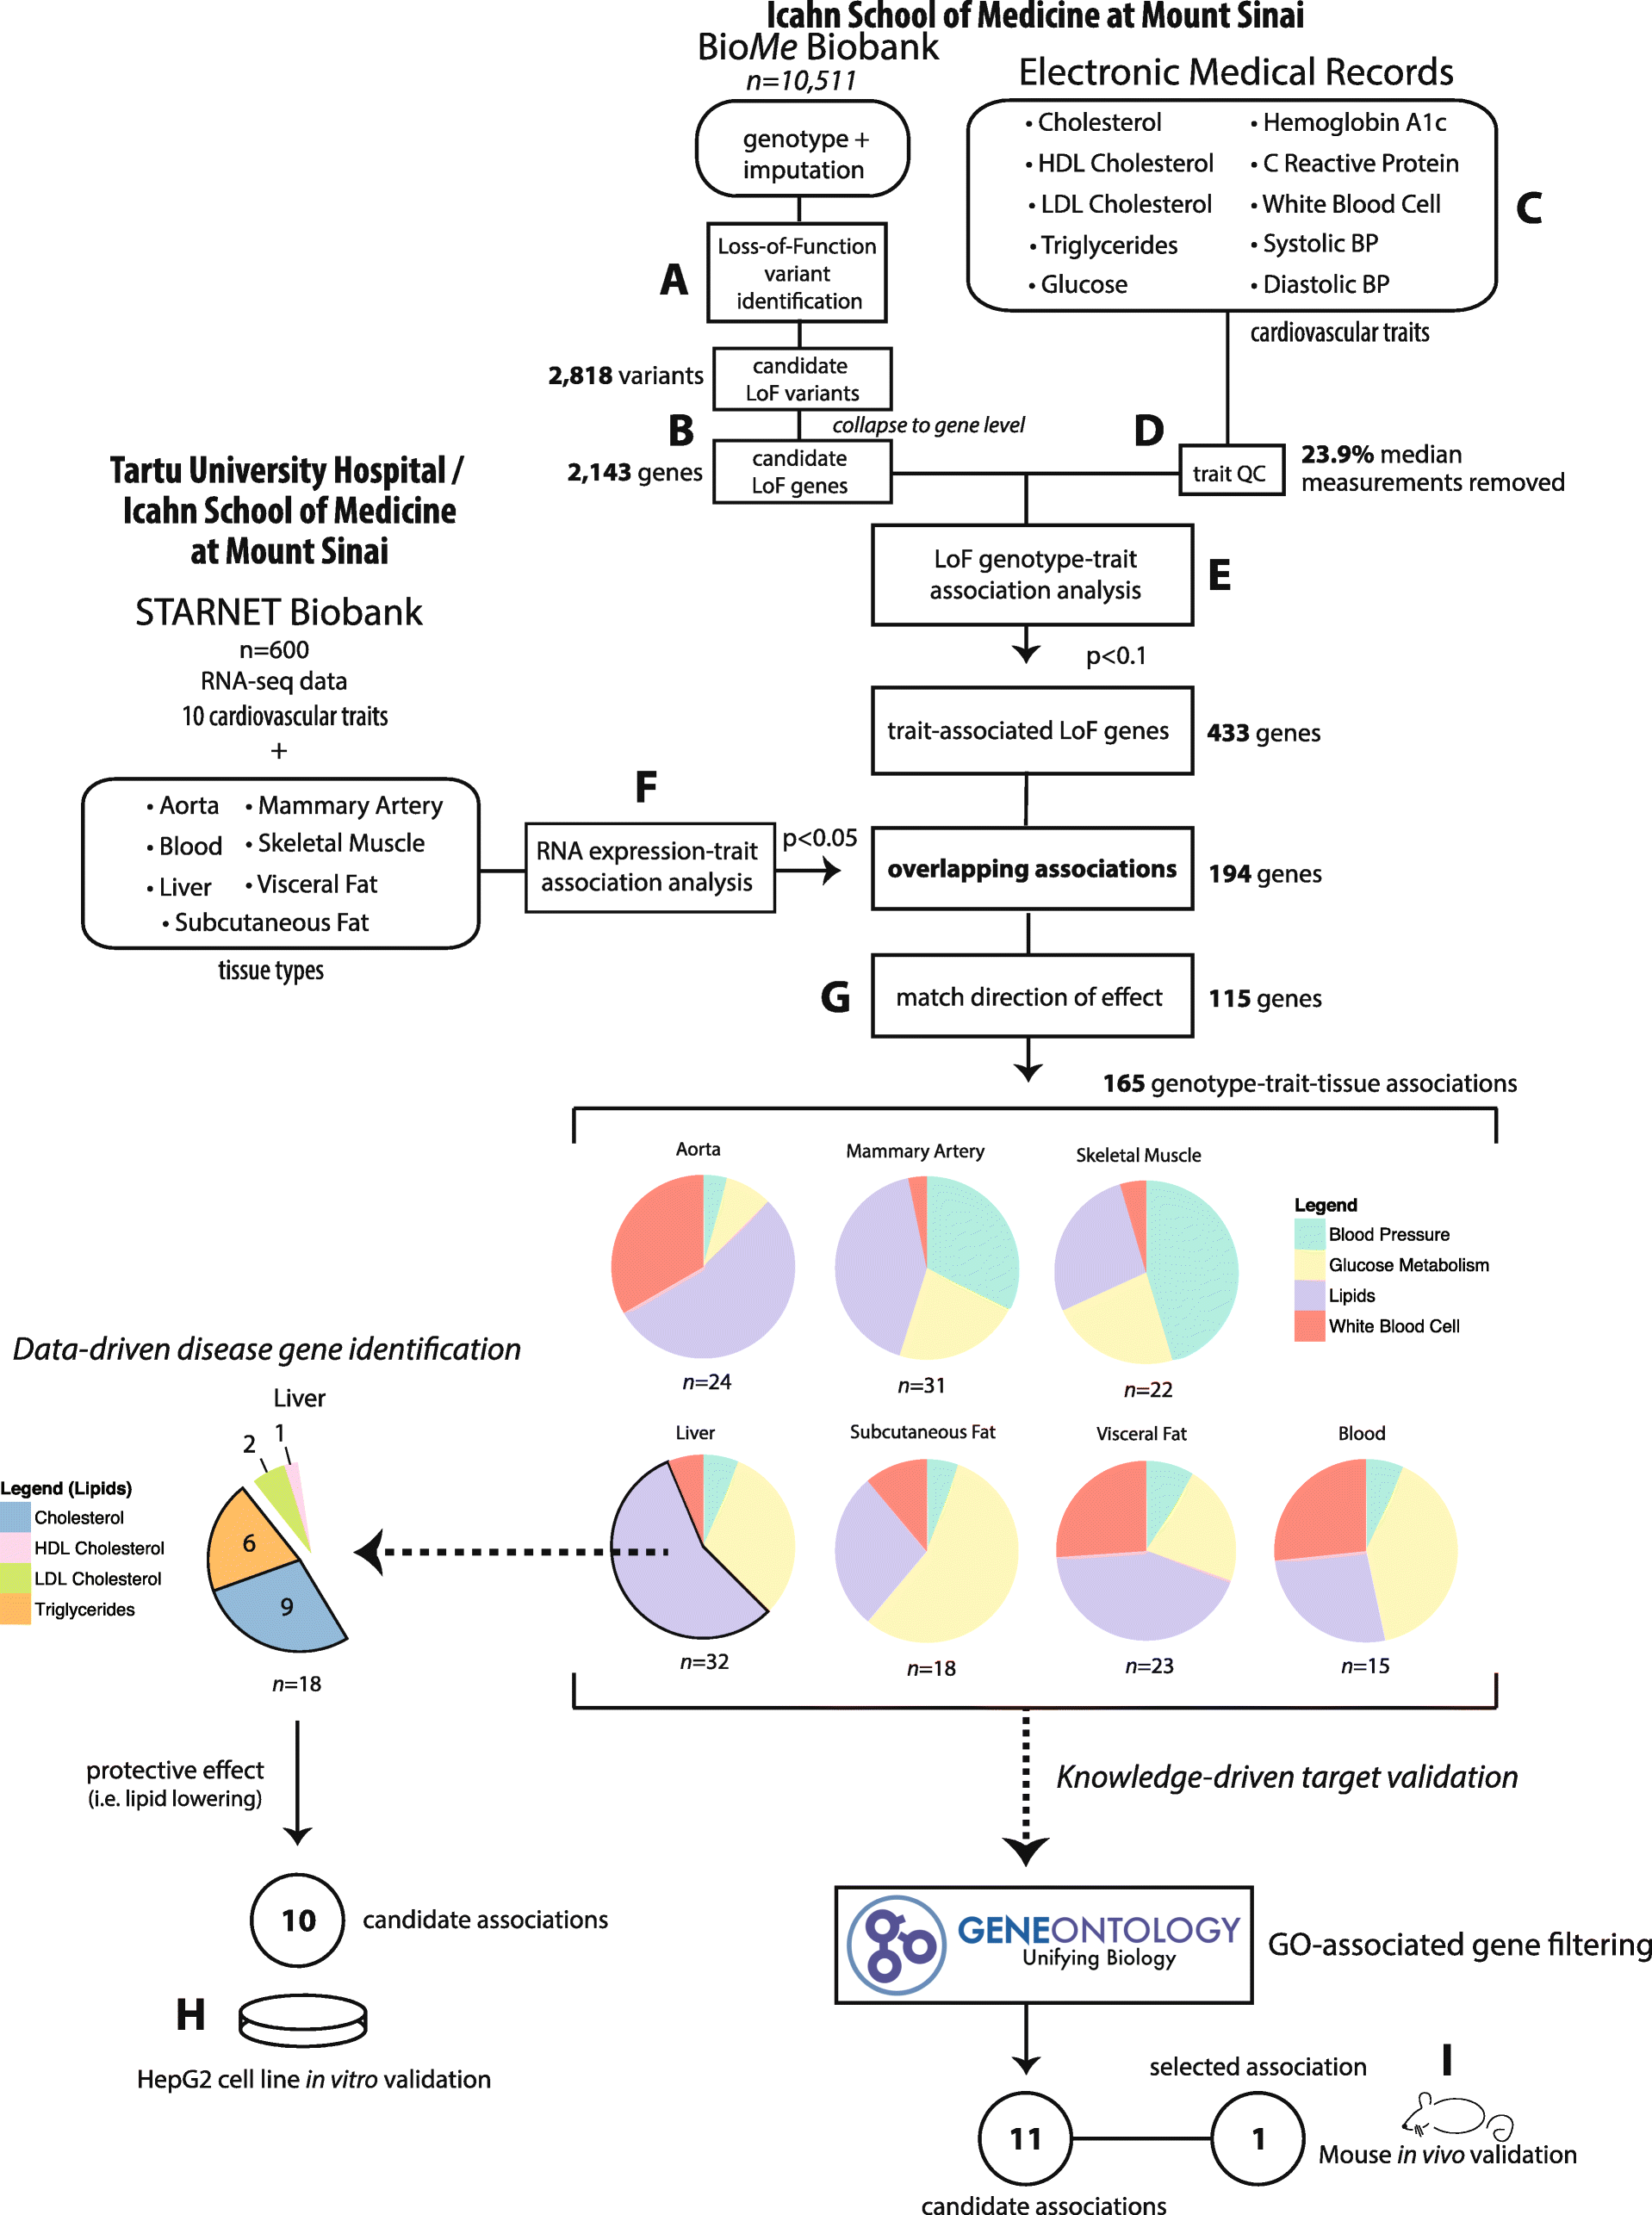 Integrative analysis of loss-of-function variants in